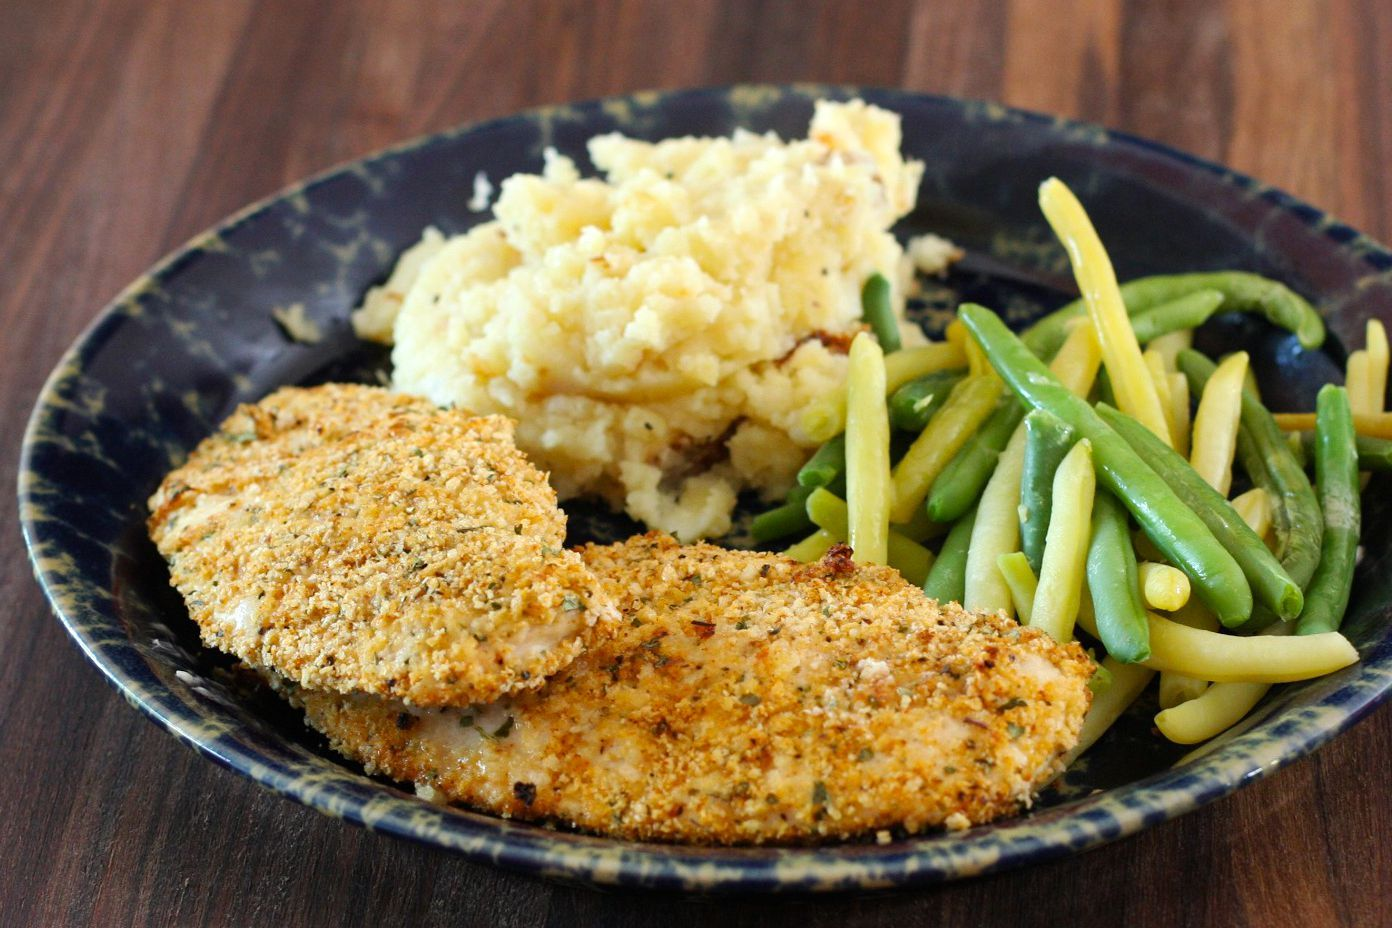 Oven Fried Chicken With Crispy Panko Coating Recipe Food Baked Chicken Baked Panko Chicken Oven Fried Chicken